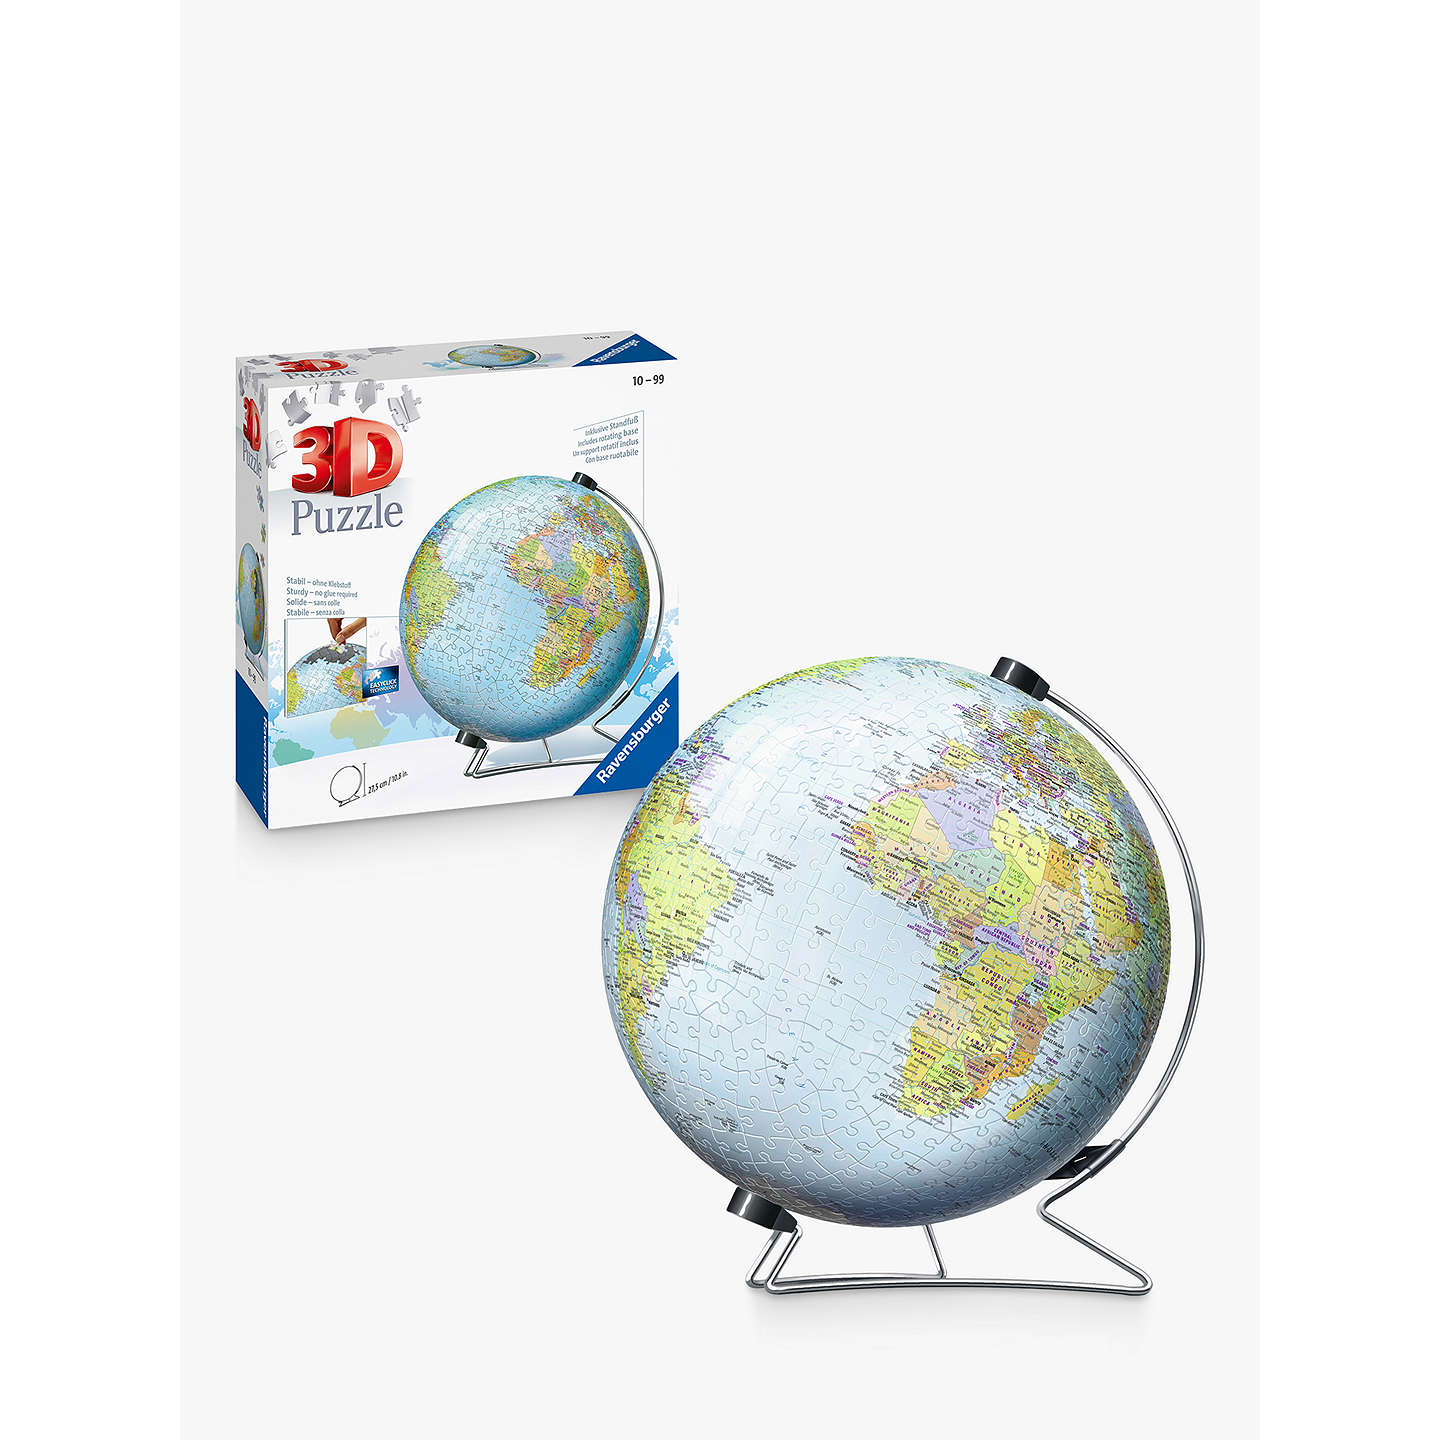 Ravensburger the world 3d jigsaw puzzle 540 pieces at john lewis buyravensburger the world 3d jigsaw puzzle 540 pieces online at johnlewis gumiabroncs Image collections